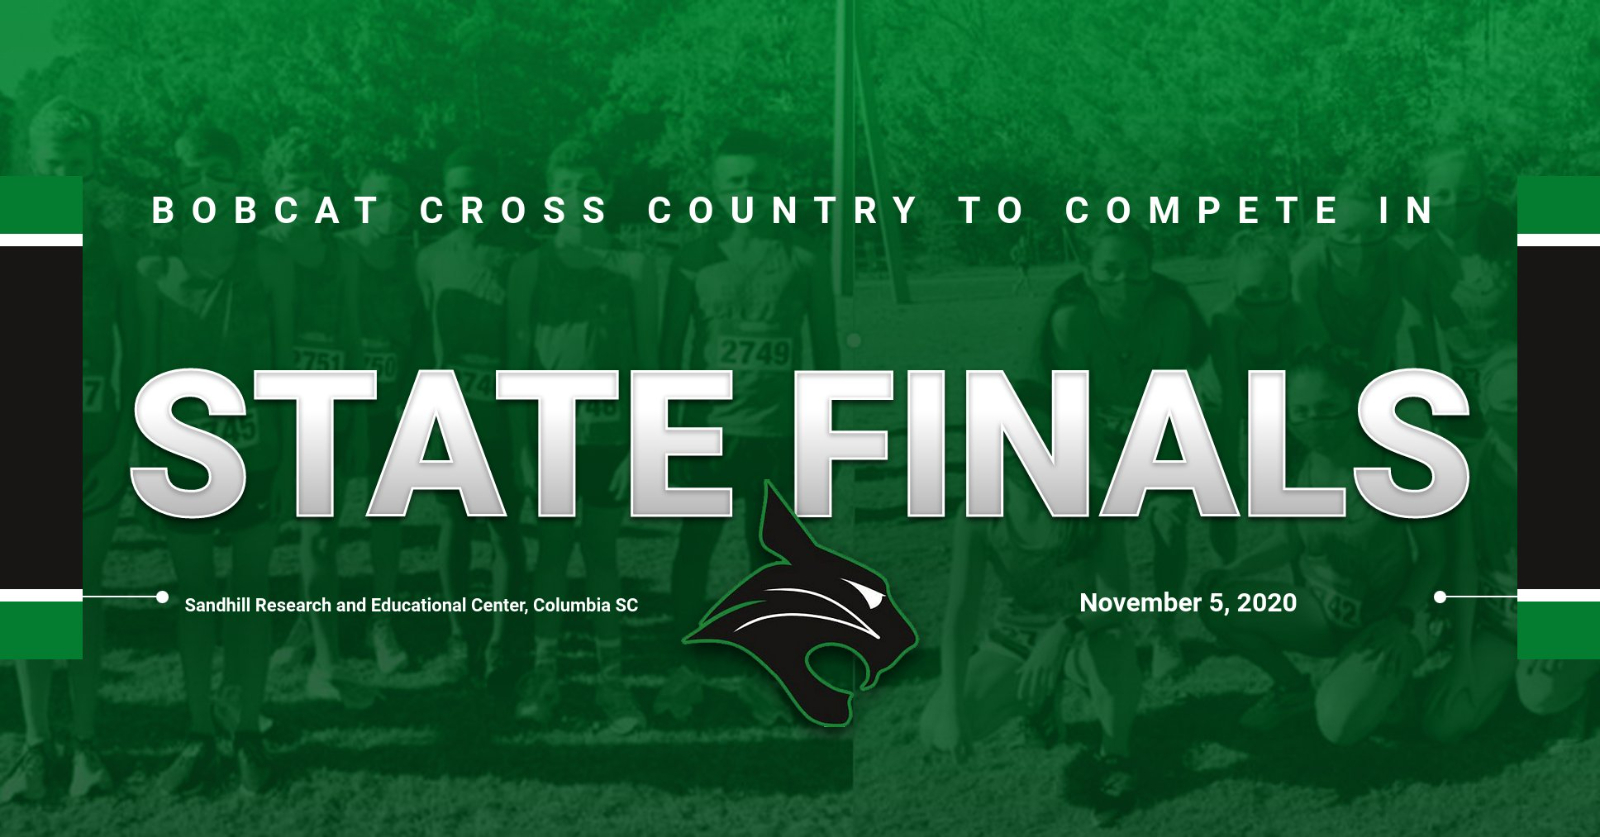 Bobcat Cross Country Teams to Compete in State Finals (11/5)